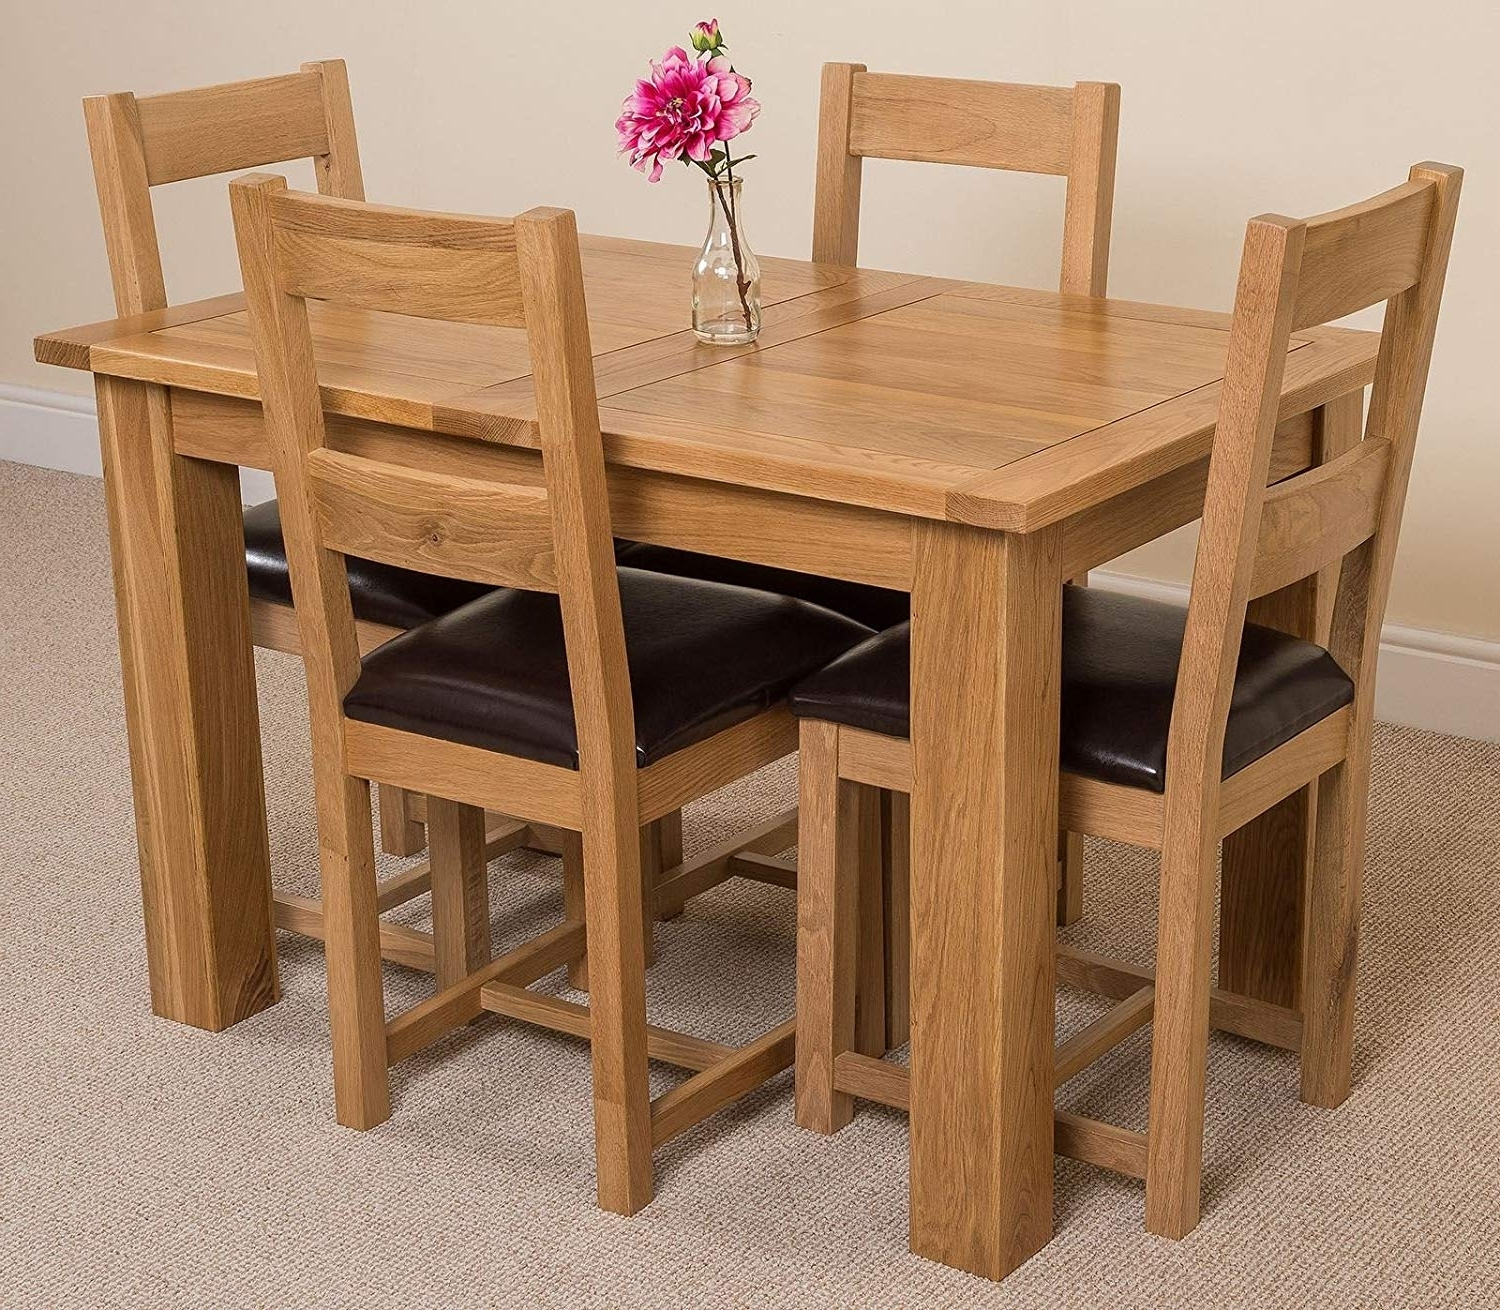 2018 Hampton Solid Oak (120 160 Cm) Extending Dining Table & 4 Lincoln Within Extendable Oak Dining Tables And Chairs (View 8 of 25)